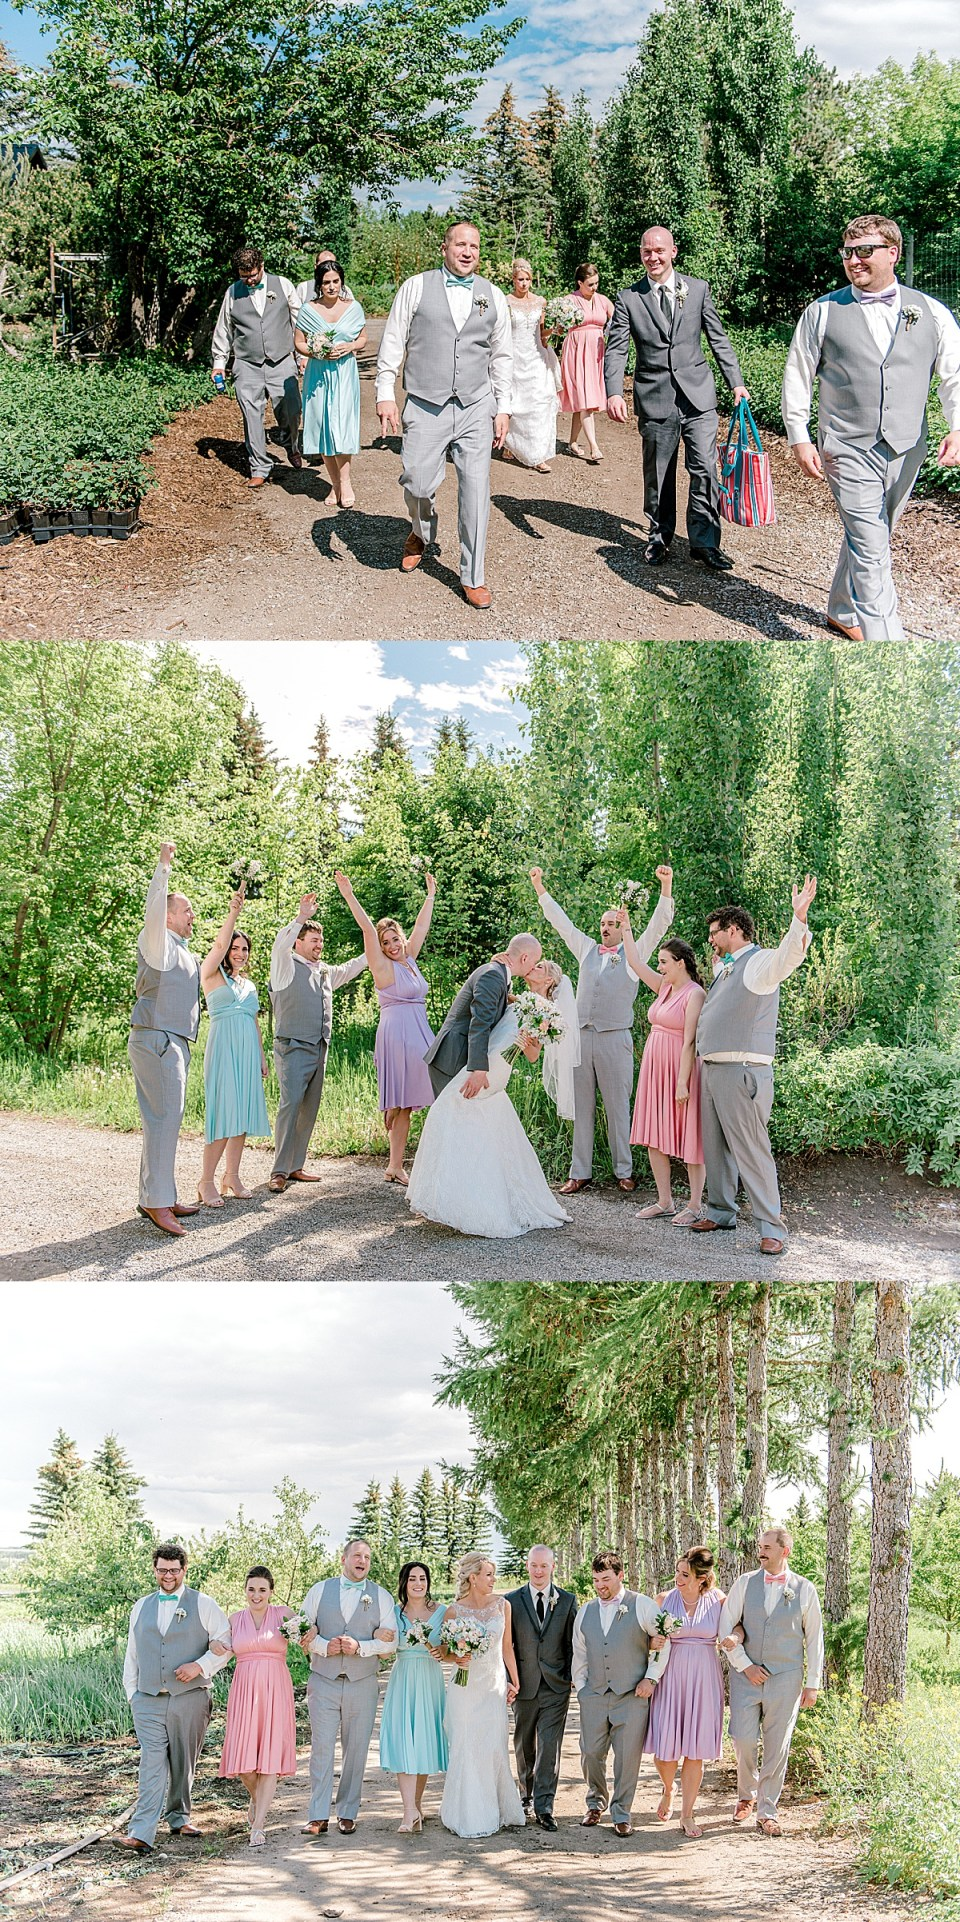 wedding-party-poses-wedding-at-saskatoon-farm-near-calgary-raelene-schulmeister-photography